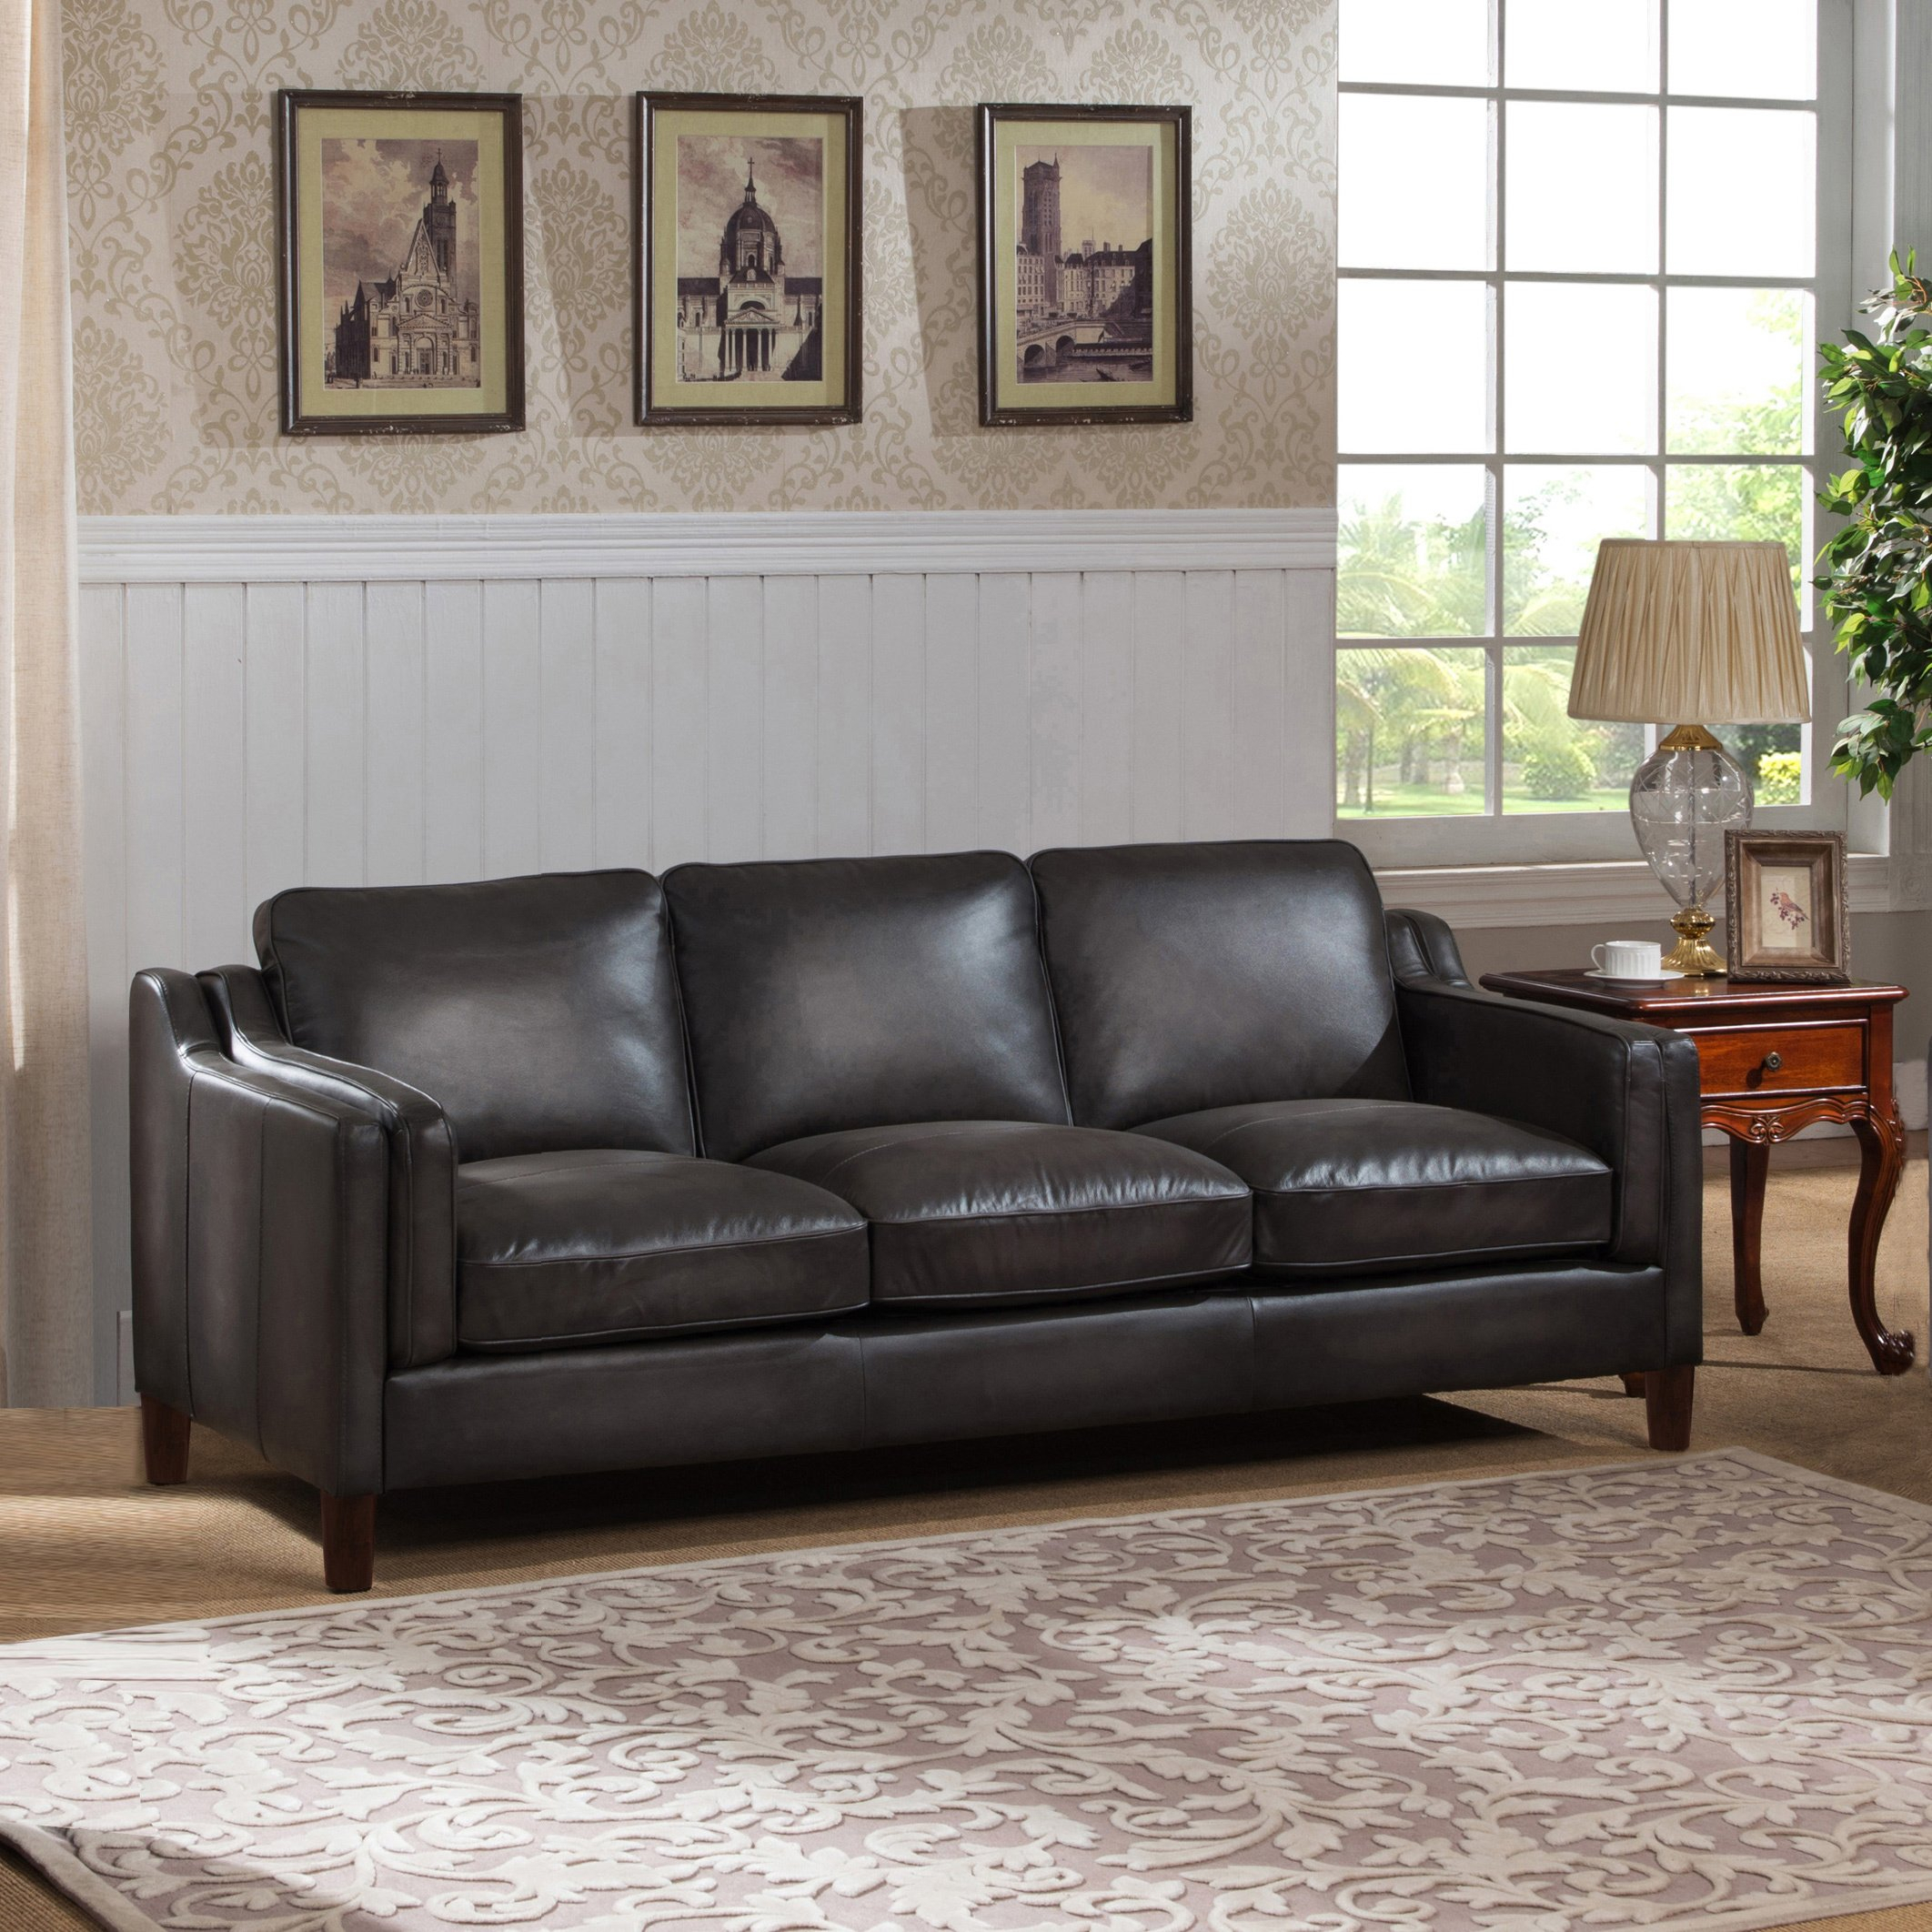 Shop Ames Premium Hand Rubbed Grey Top Grain Leather Sofa And Chair Inside Ames Arm Sofa Chairs (View 11 of 25)